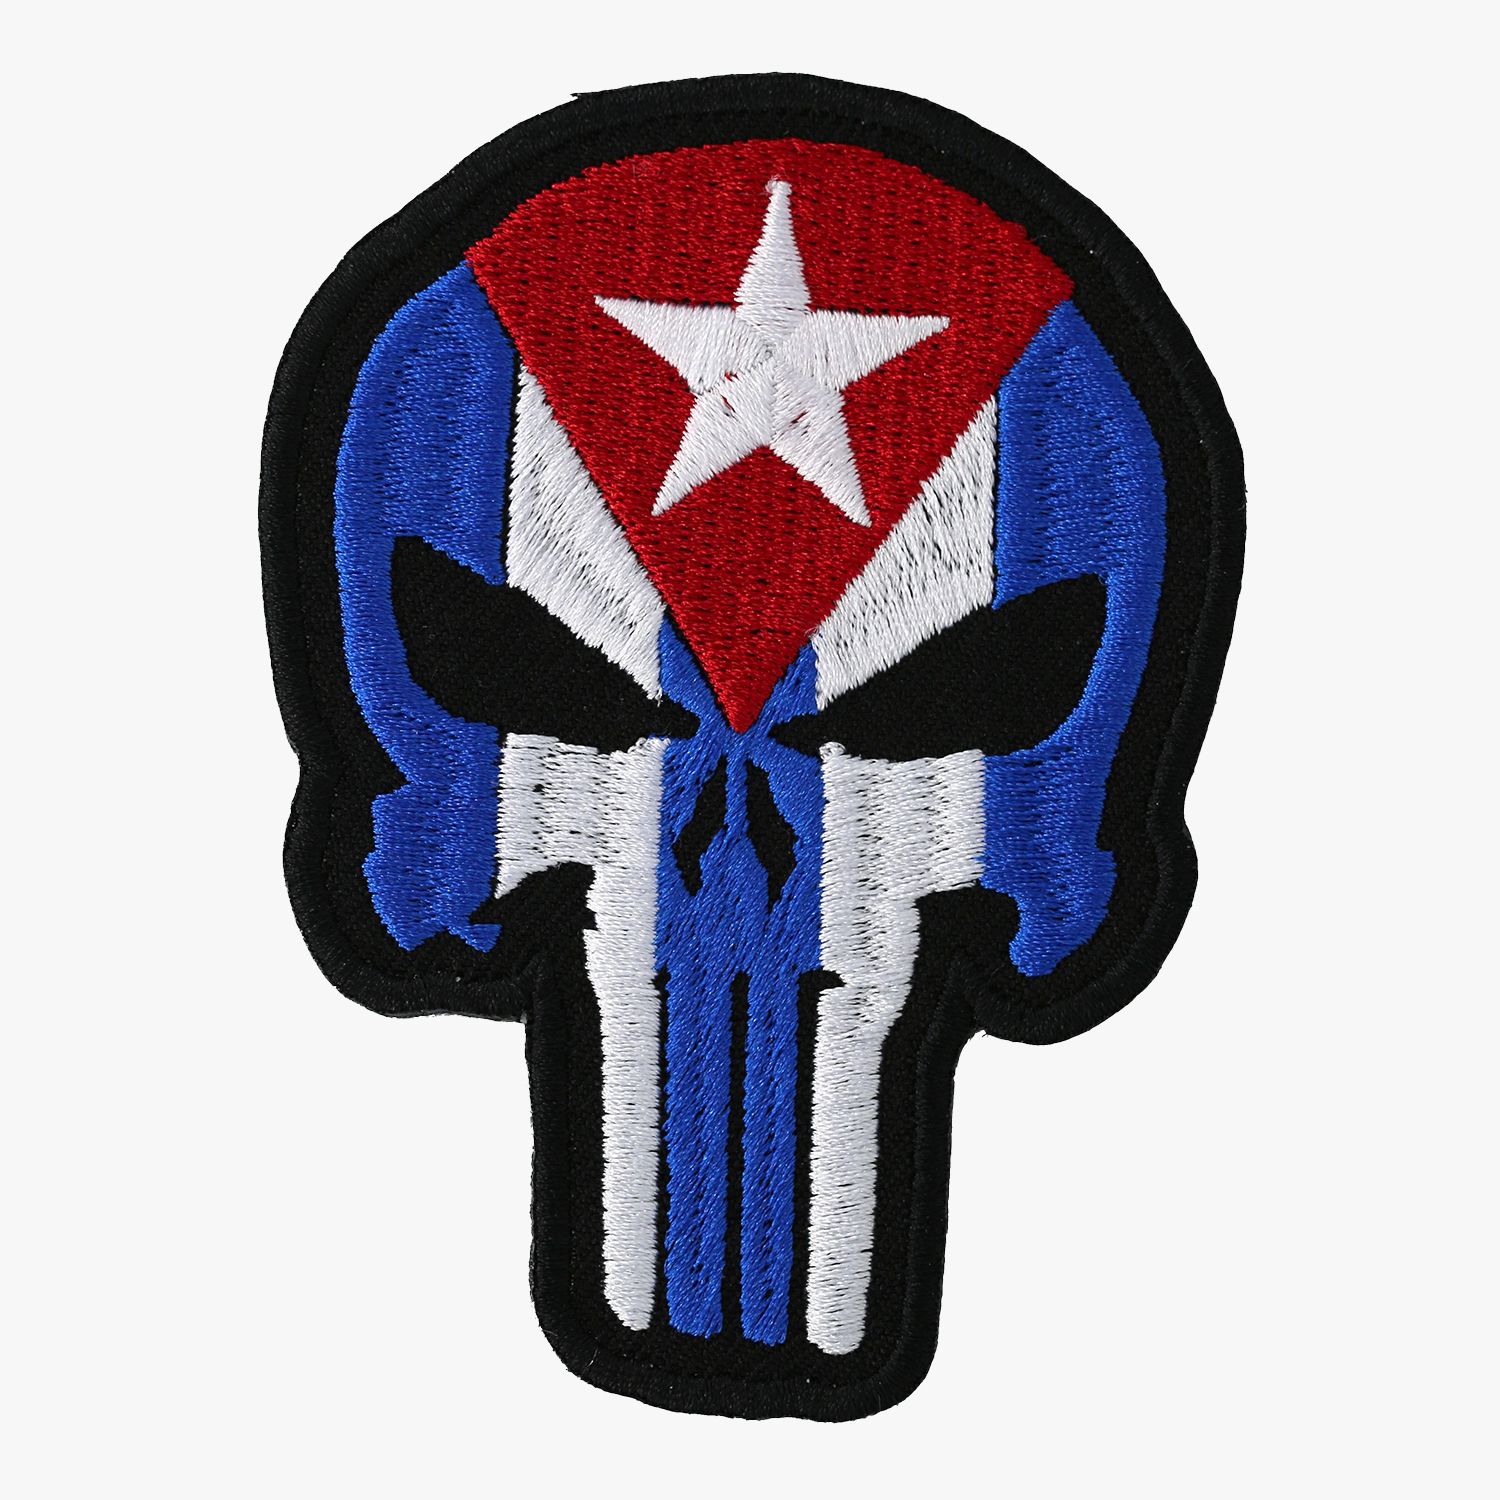 Cuba Flag Punisher Skull Embroidered Biker Patch